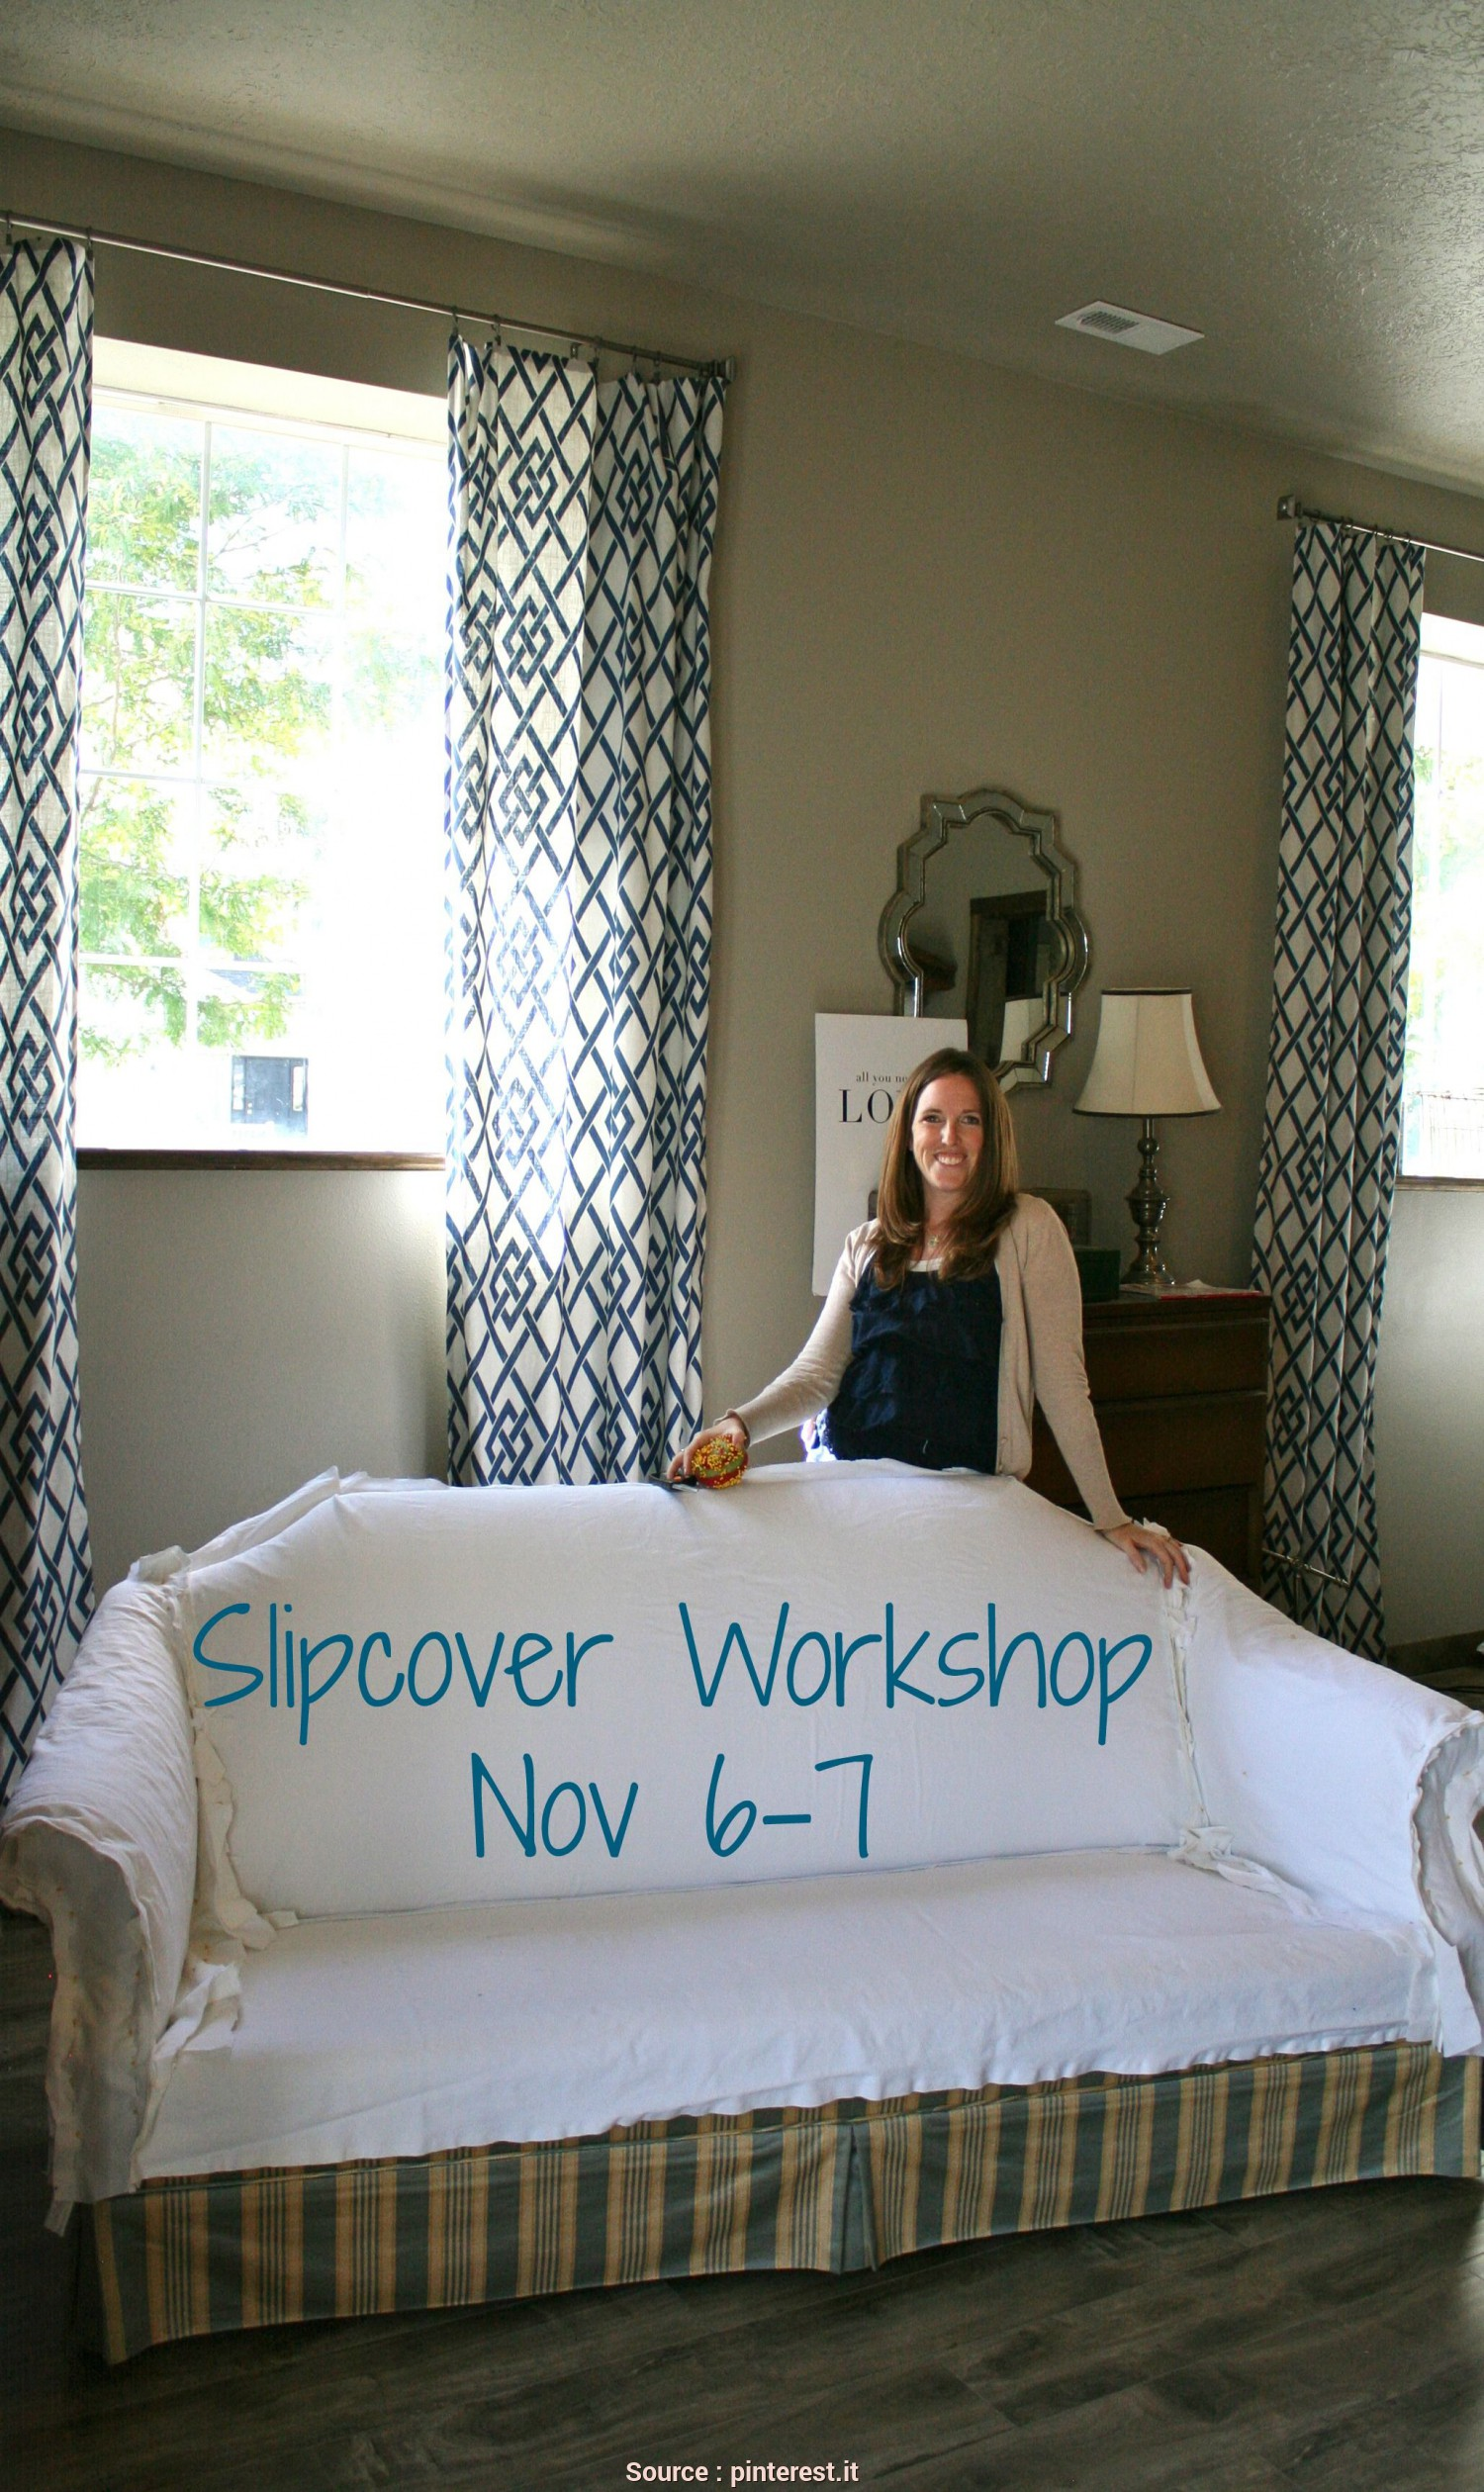 Tappezzeria, Divani, Da Te, Modesto Custom Slipcovers By Shelley: Slipcover Workshop, 6-7, 2015 Coperture, Divano